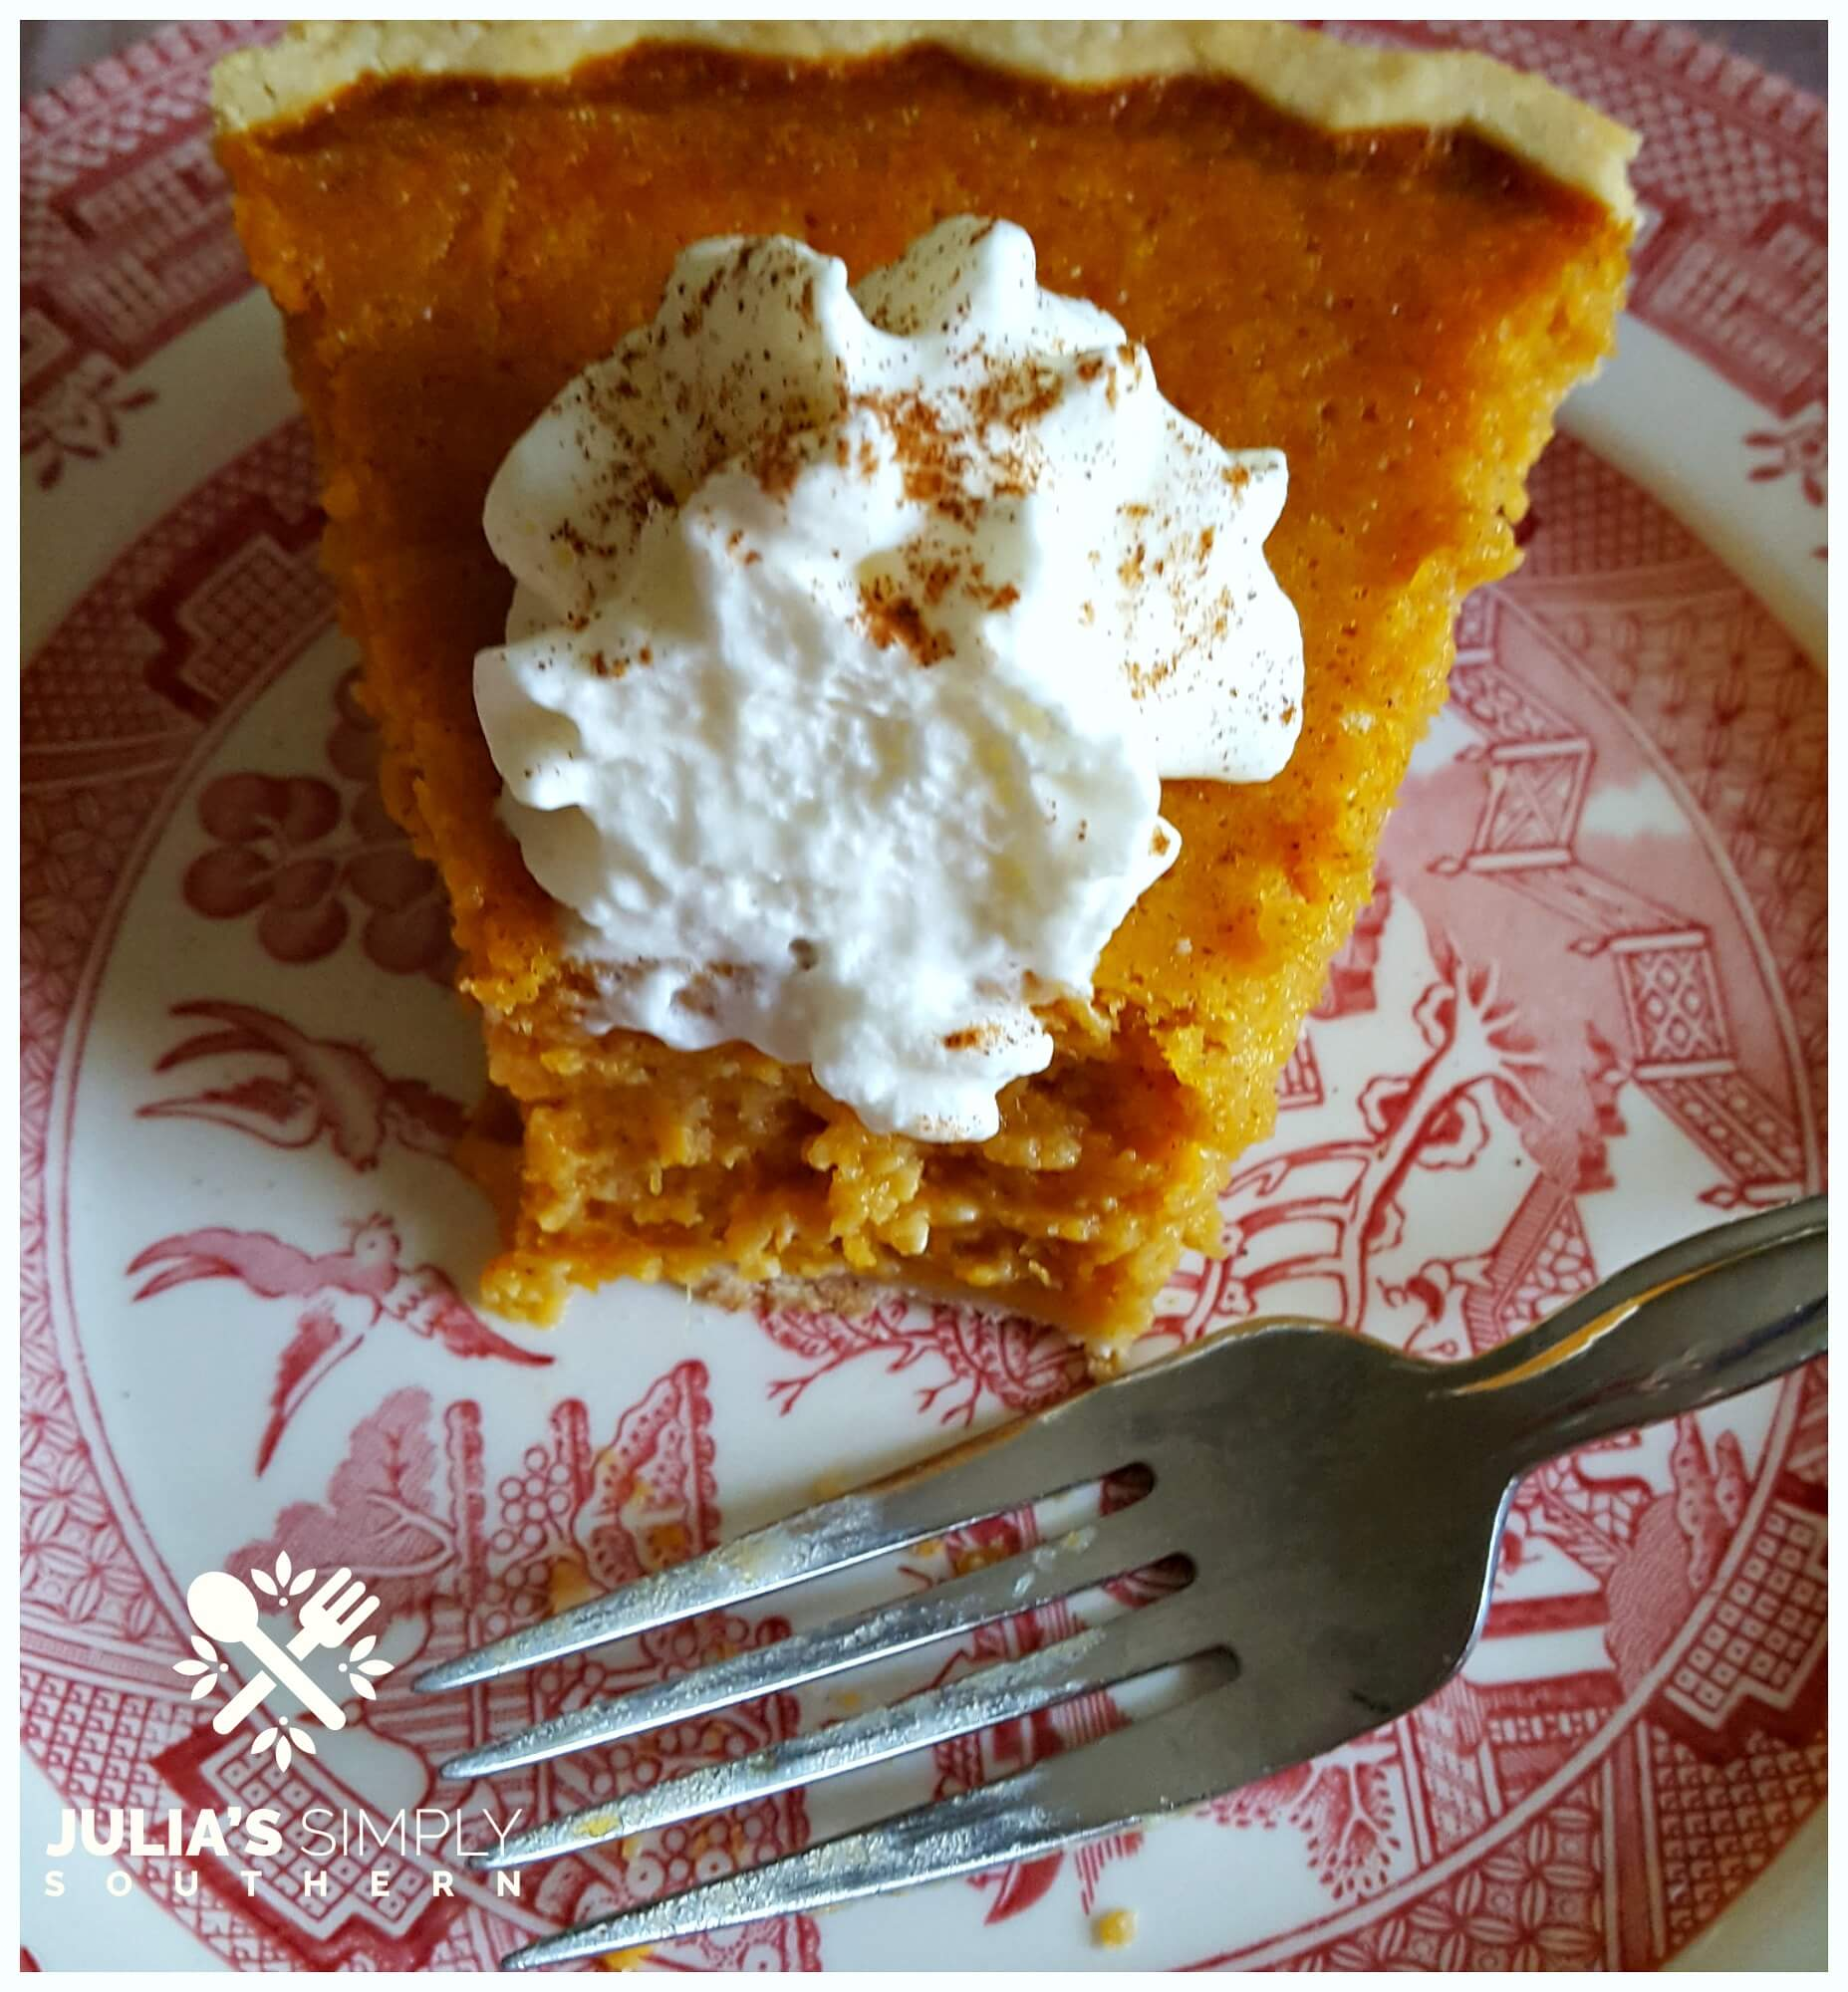 Delicious pie of Southern sweet potato pie topped with whipped cream on a red and white china plate